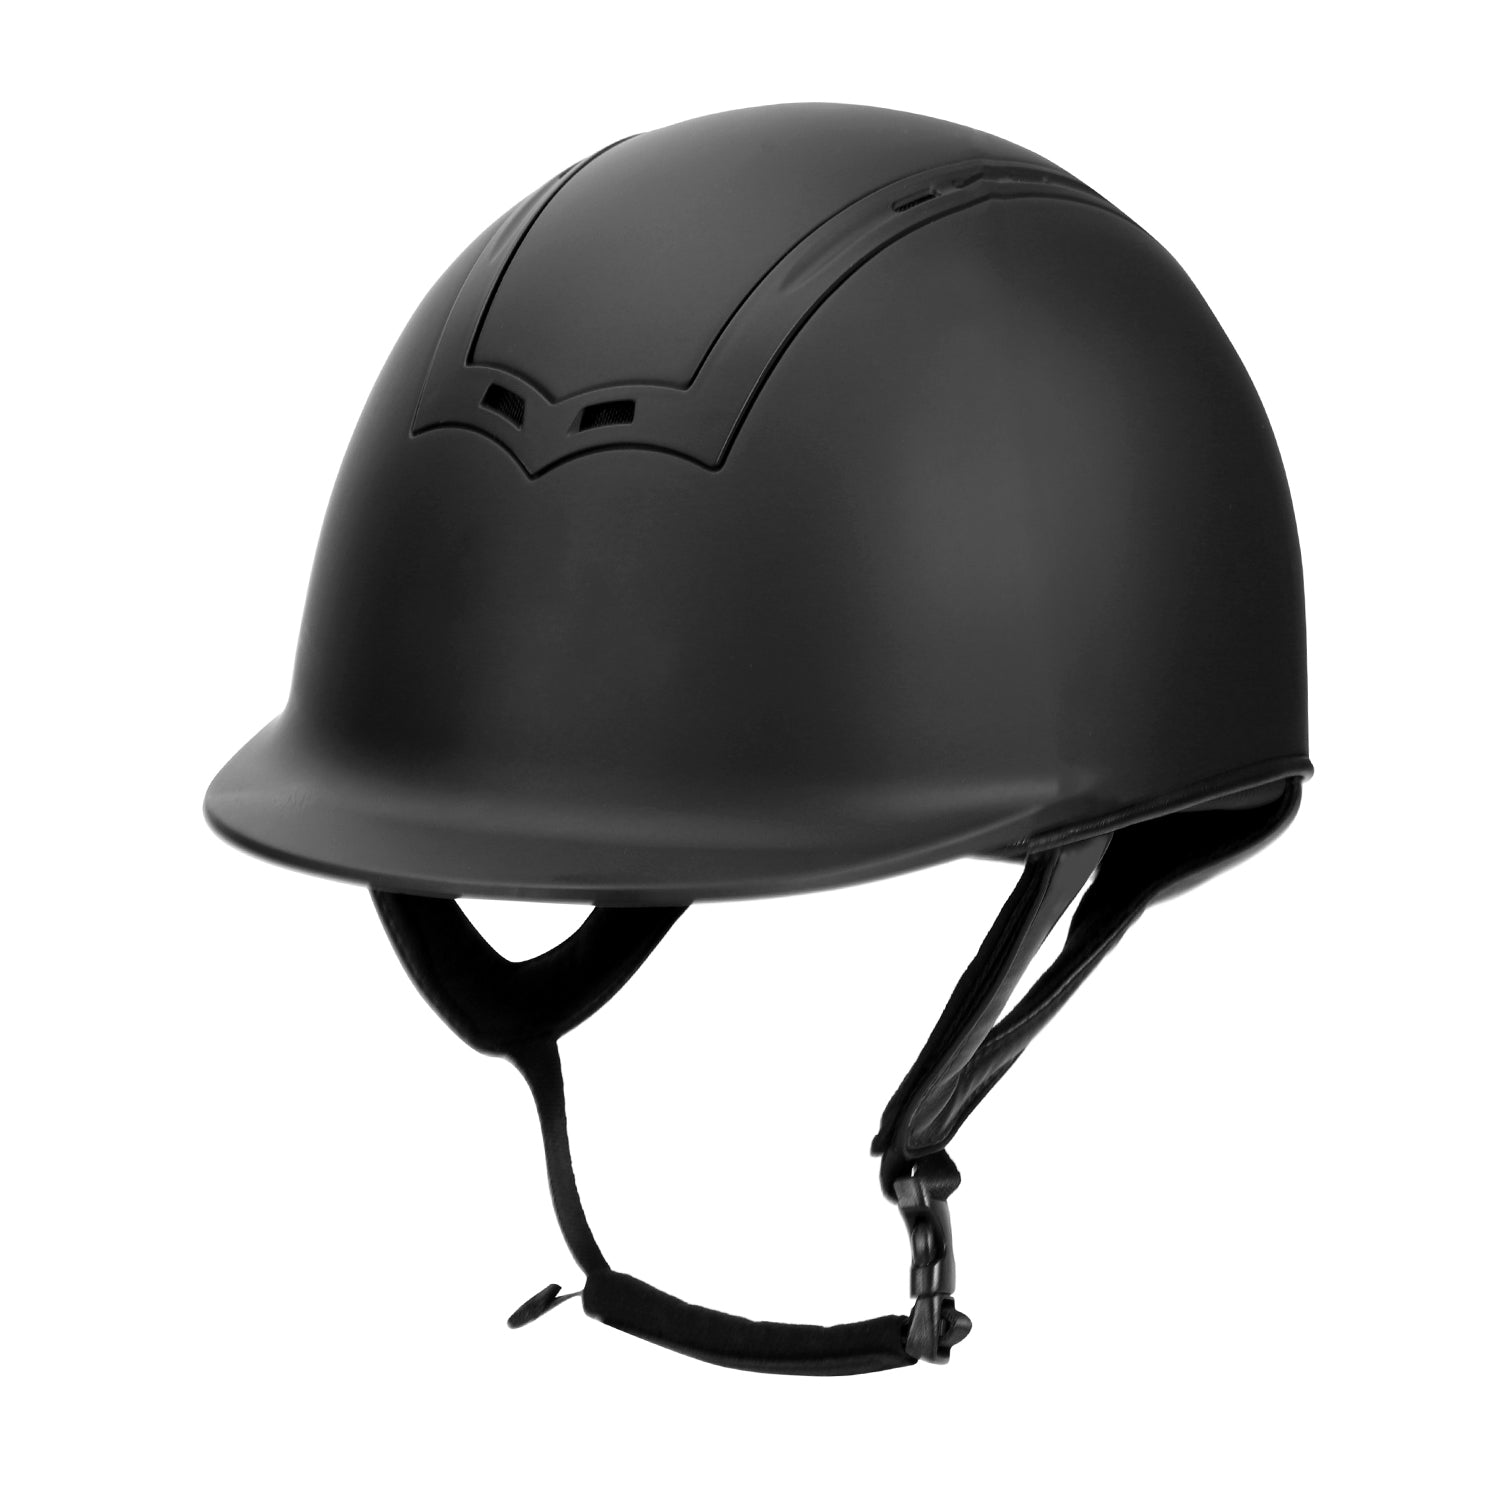 SEI Certified Black Tough and Durable TuffRider Starter Basic Horse Riding Helmet Protective Head Gear for Equestrian Riders